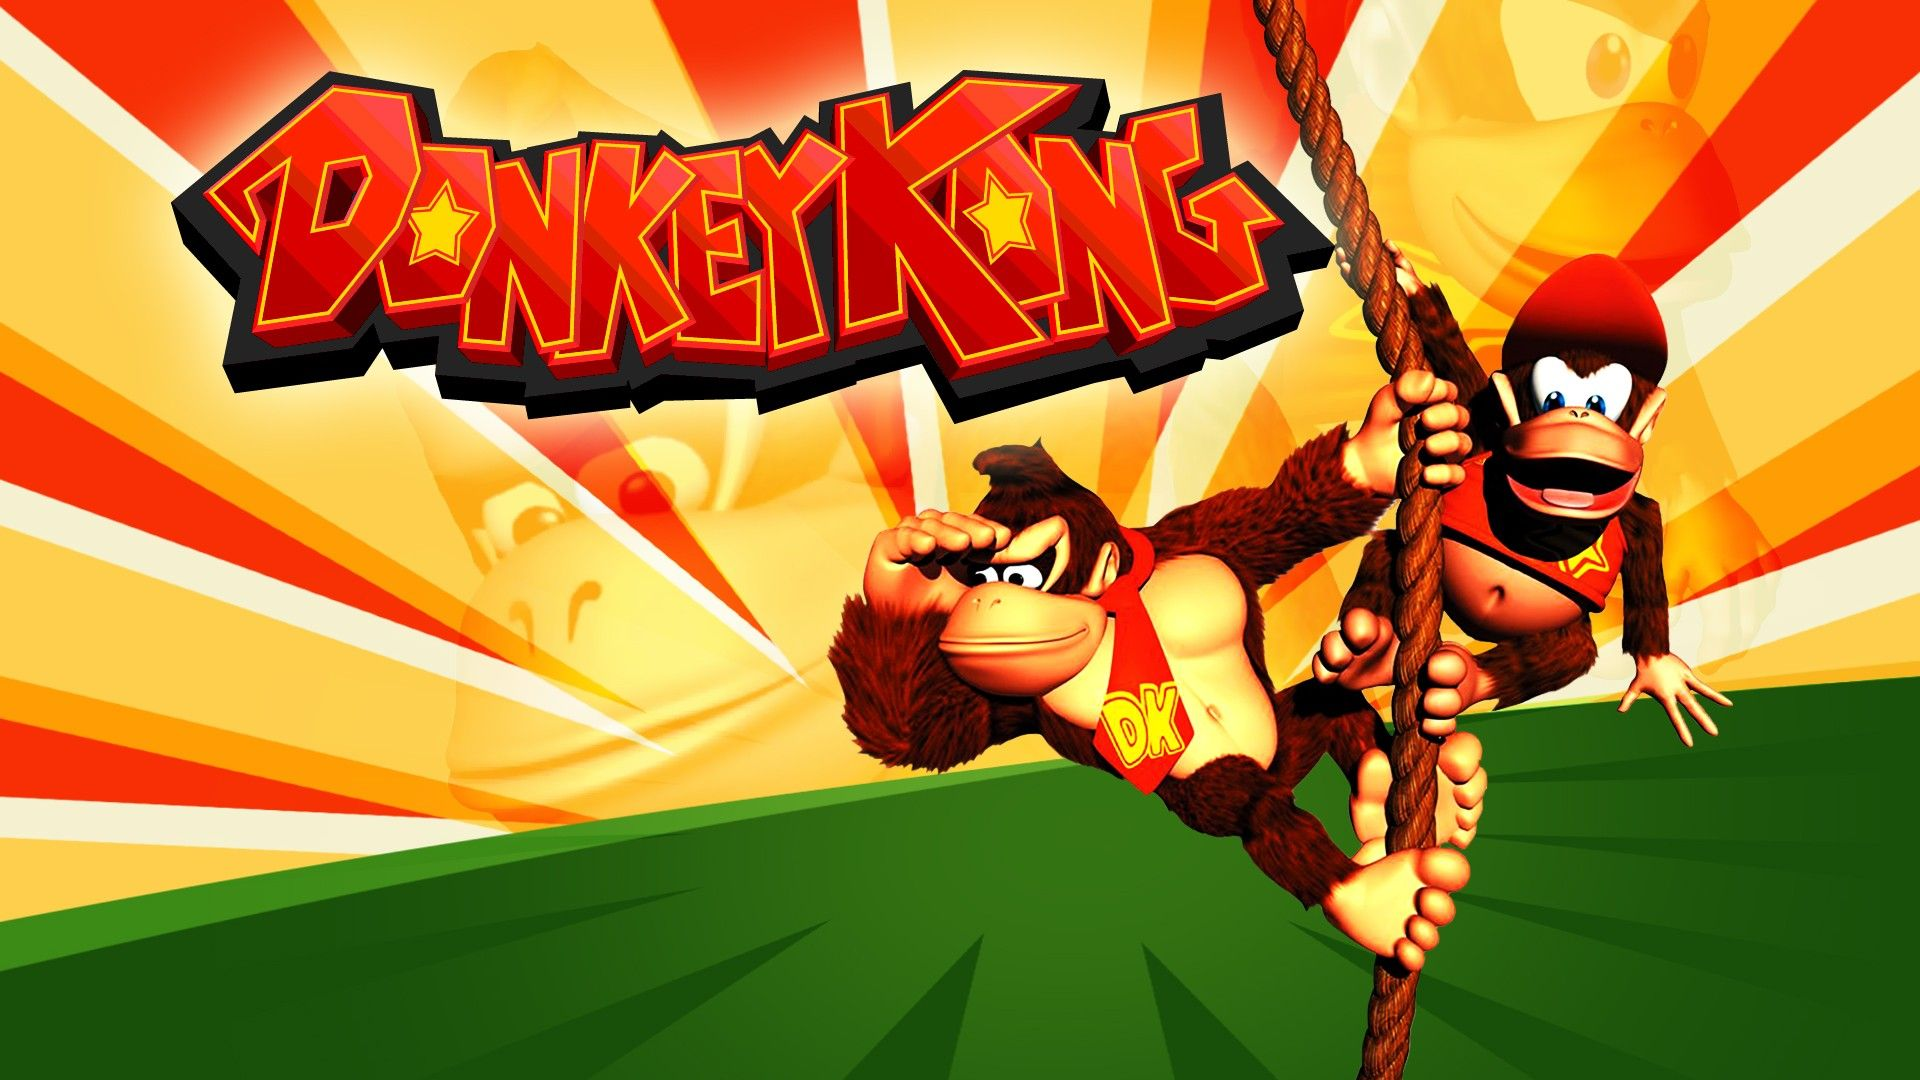 Gameboy Iphone X Wallpaper Classic Nes Series Donkey Kong Full Hd Wallpaper And